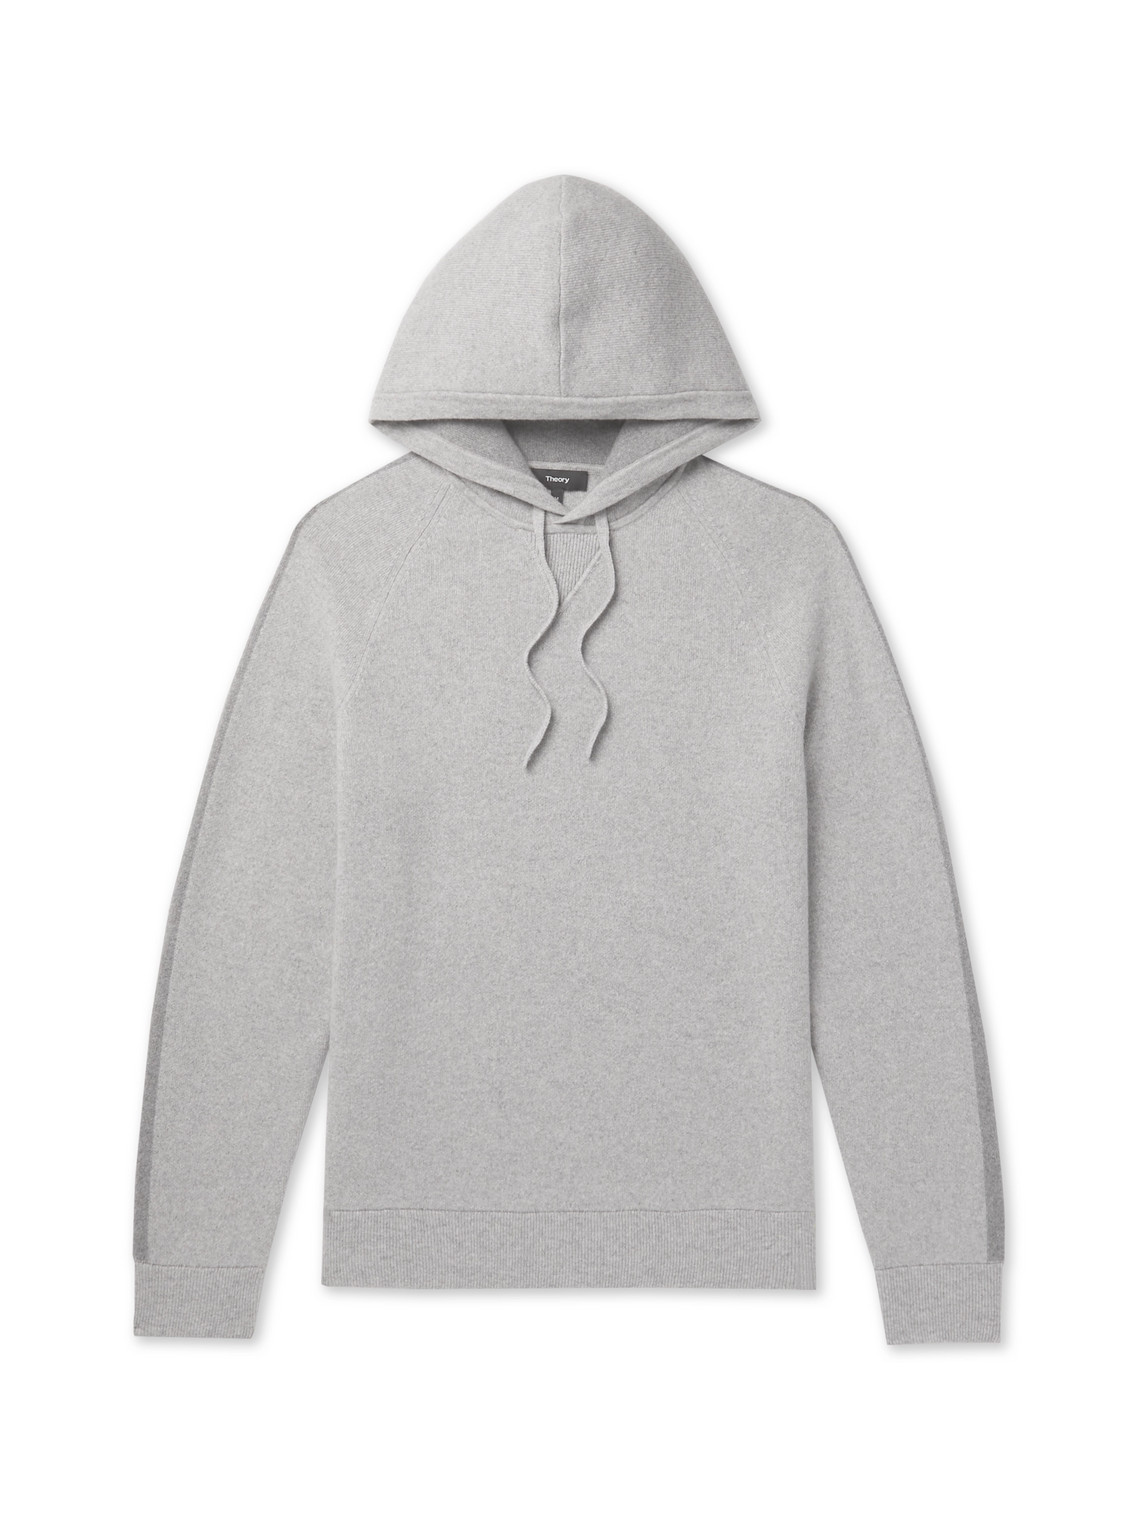 Theory - Crimden Mélange Wool And Cashmere-Blend Hoodie - Men - Gray - Xl